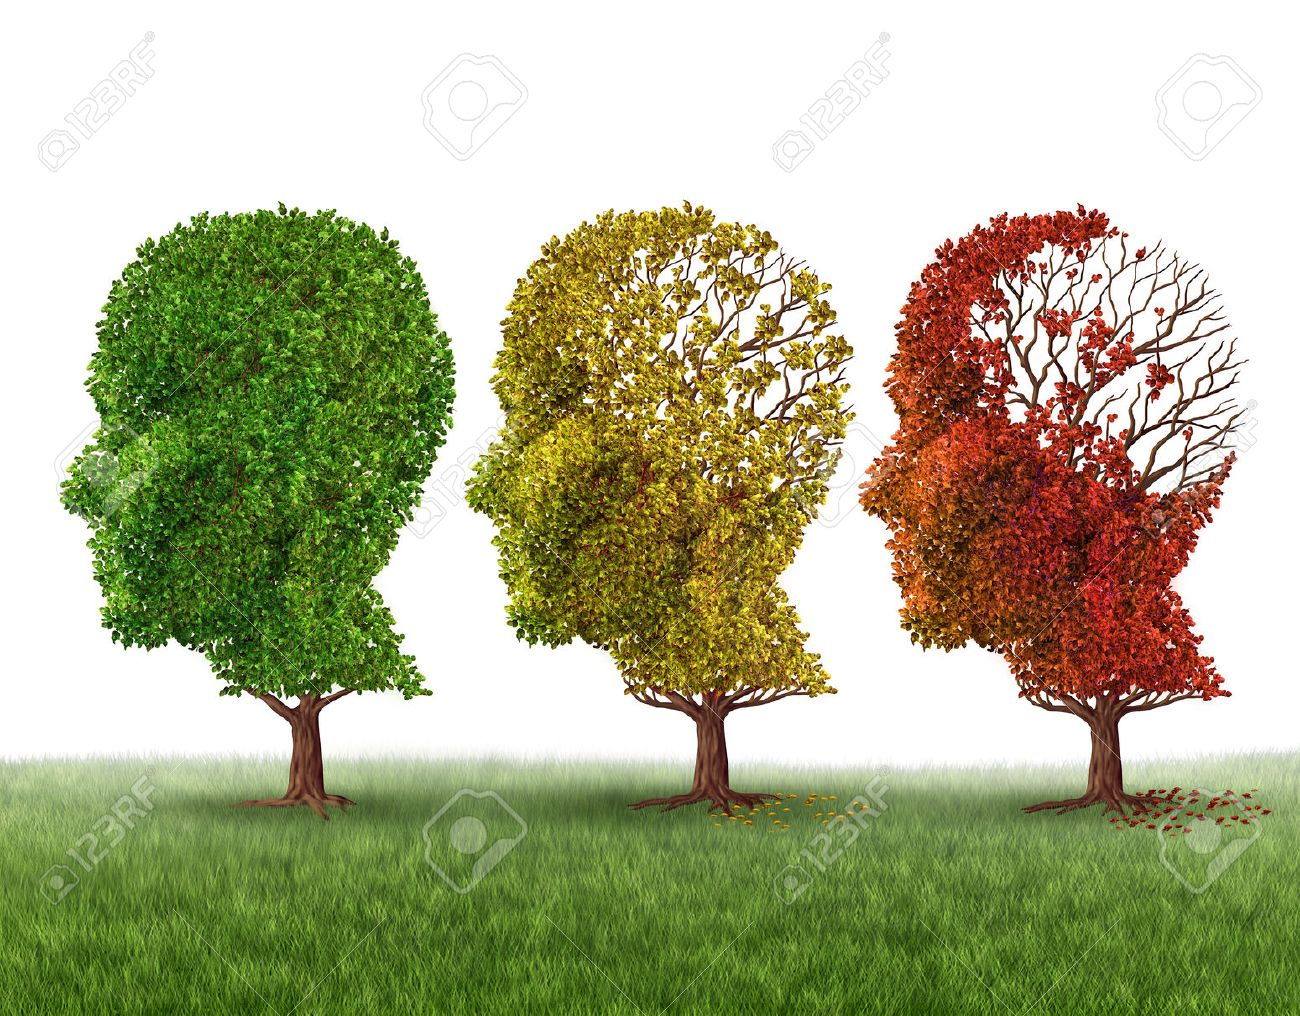 Memory loss and brain aging due to dementia and alzheimer - 38697289